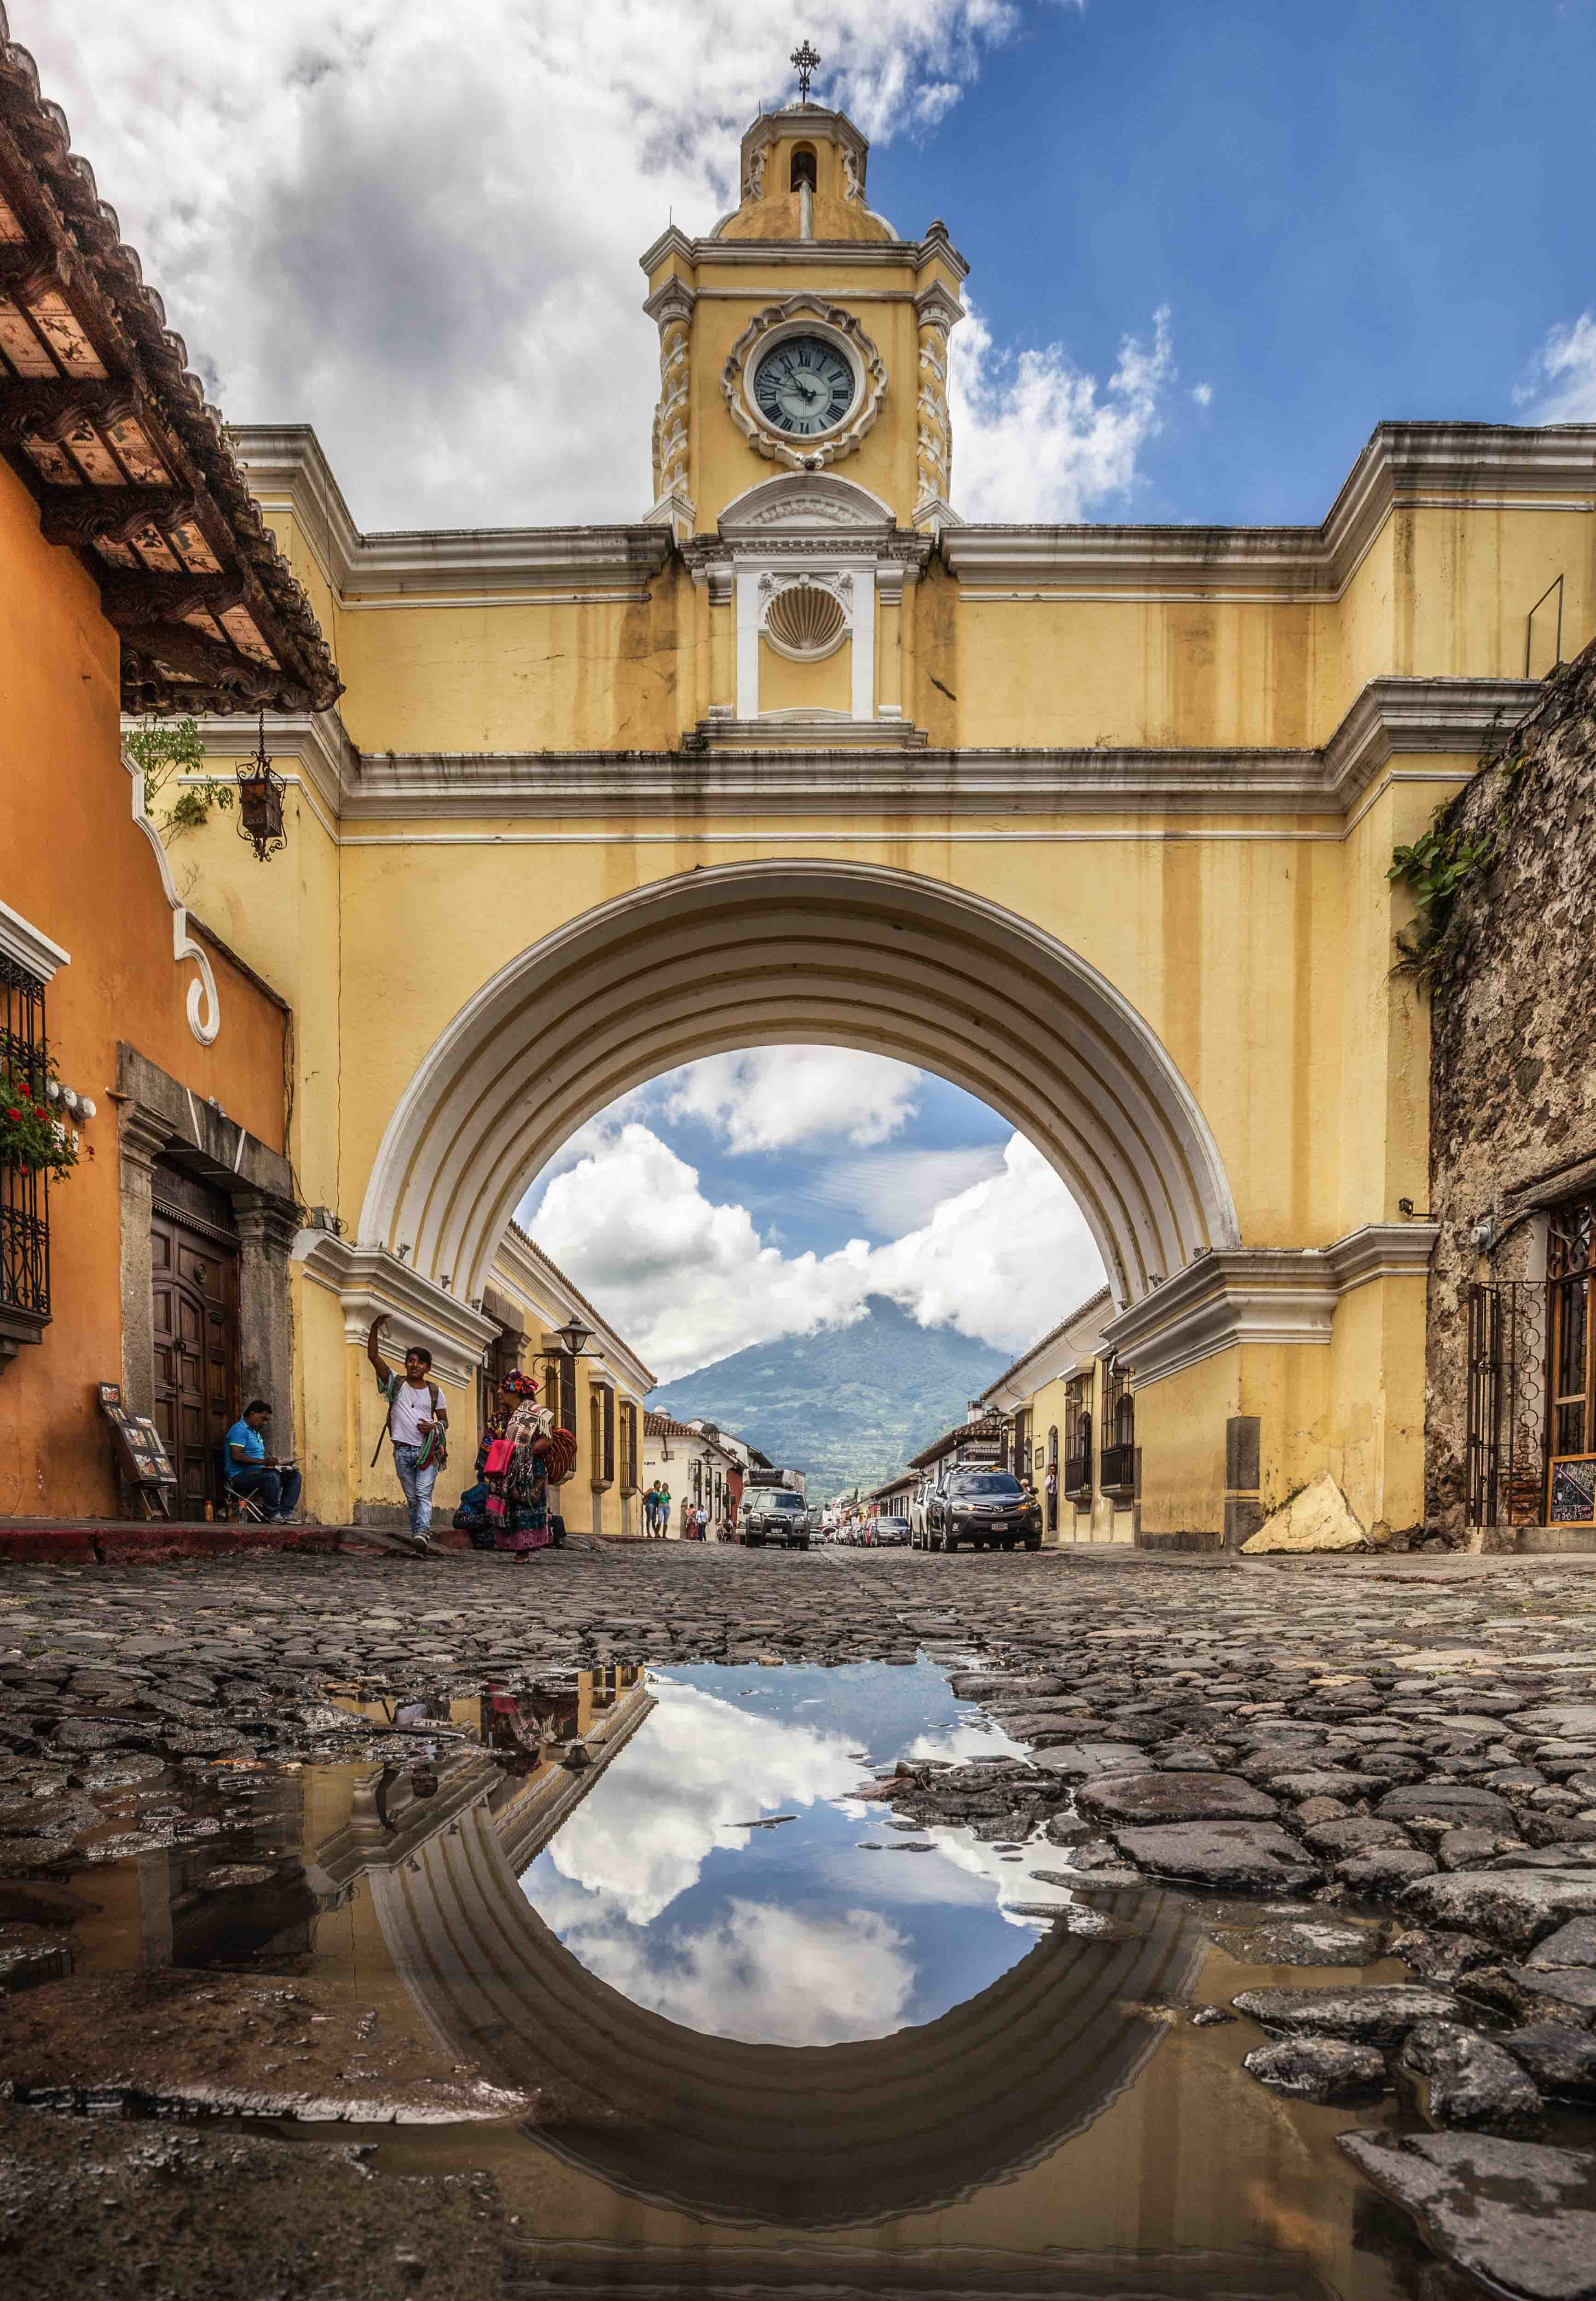 Arco de Santa Catalina in Antigua, Guatemala.